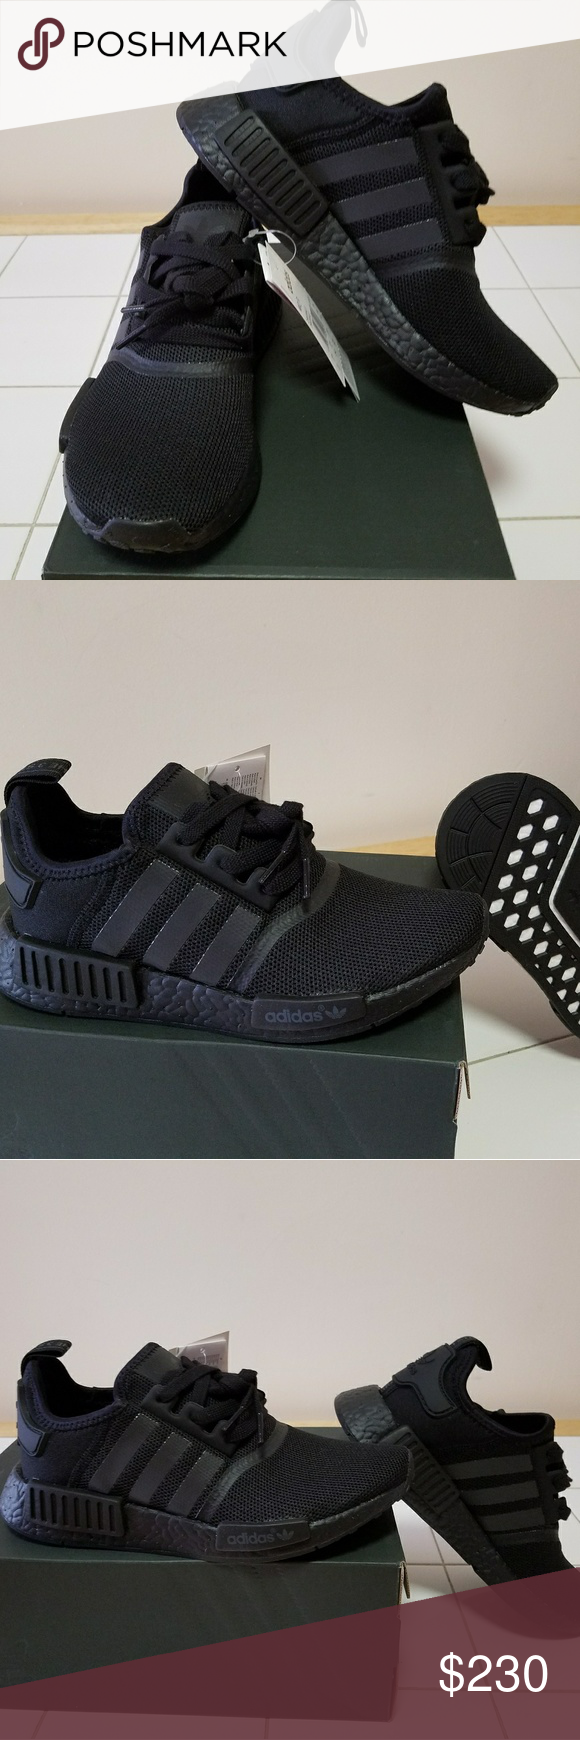 21b3374377b56 Adidas NMD R1 TRIPLE BLACK Popular NMD primeknit with reflective 3 stripe  brand and ultra boost technology Adidas Shoes Athletic Shoes